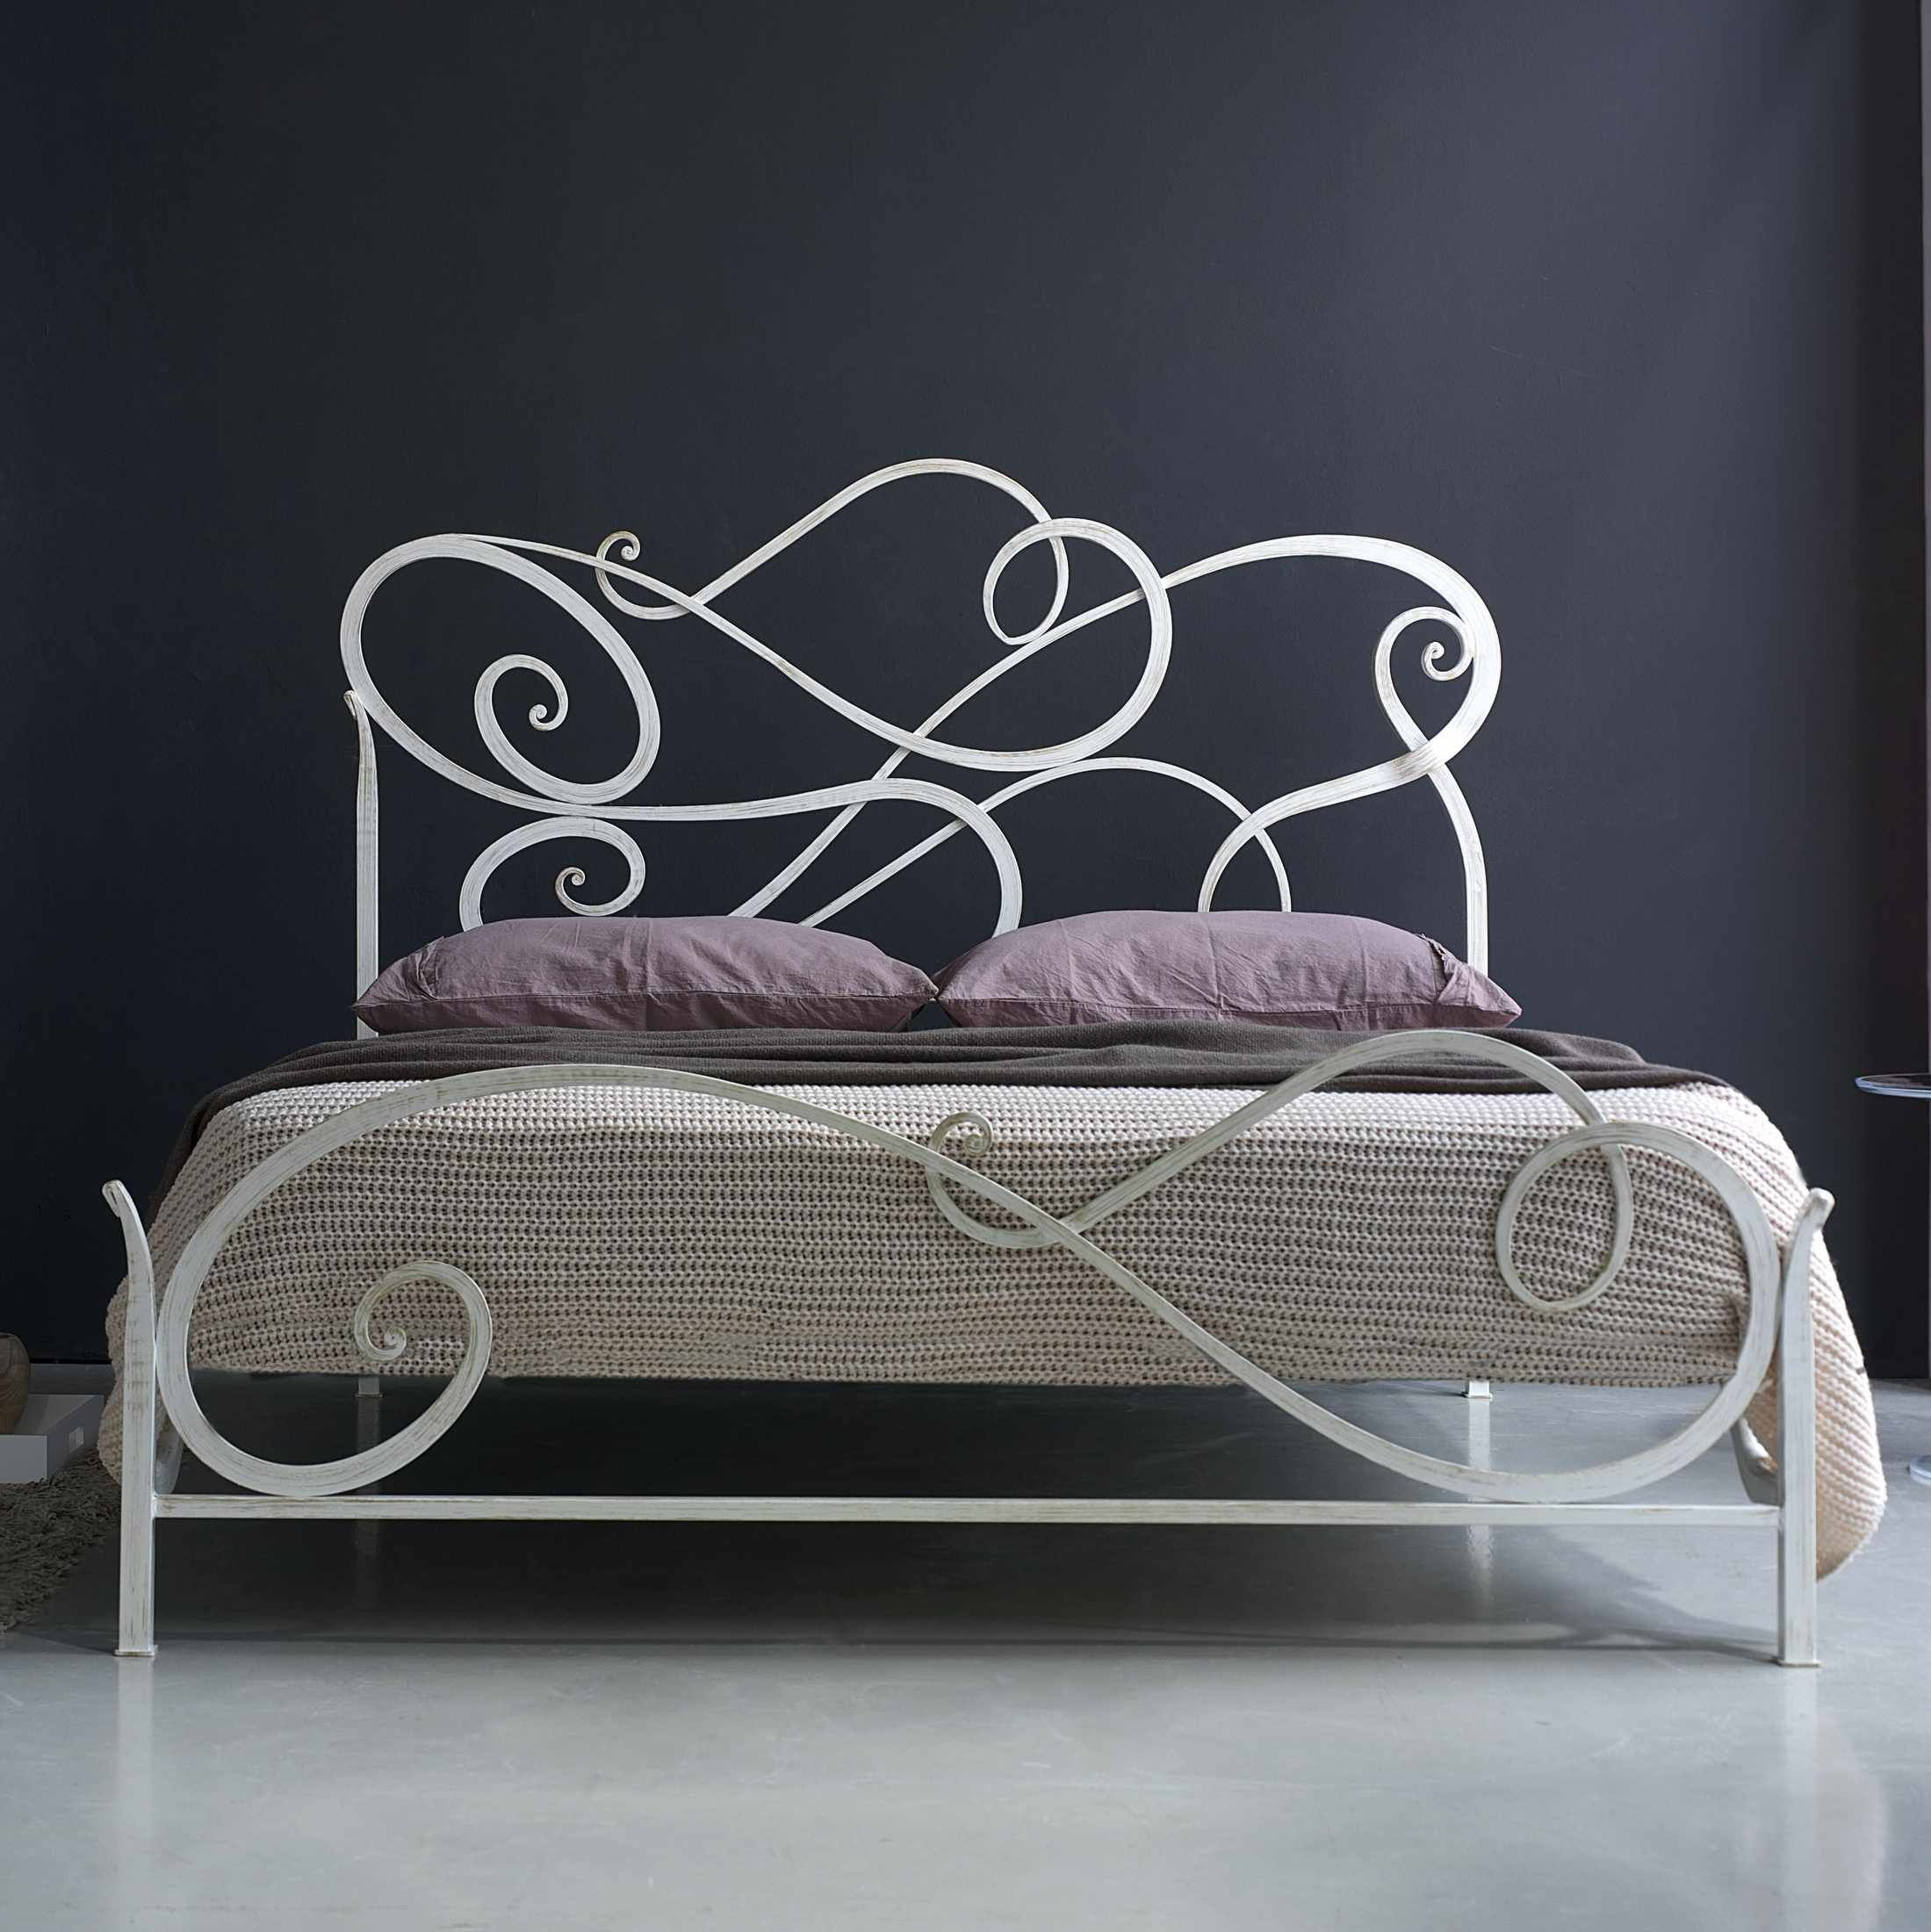 High Quality Hand Made Wrought Iron Beds In Italy My Italian Shabby ...